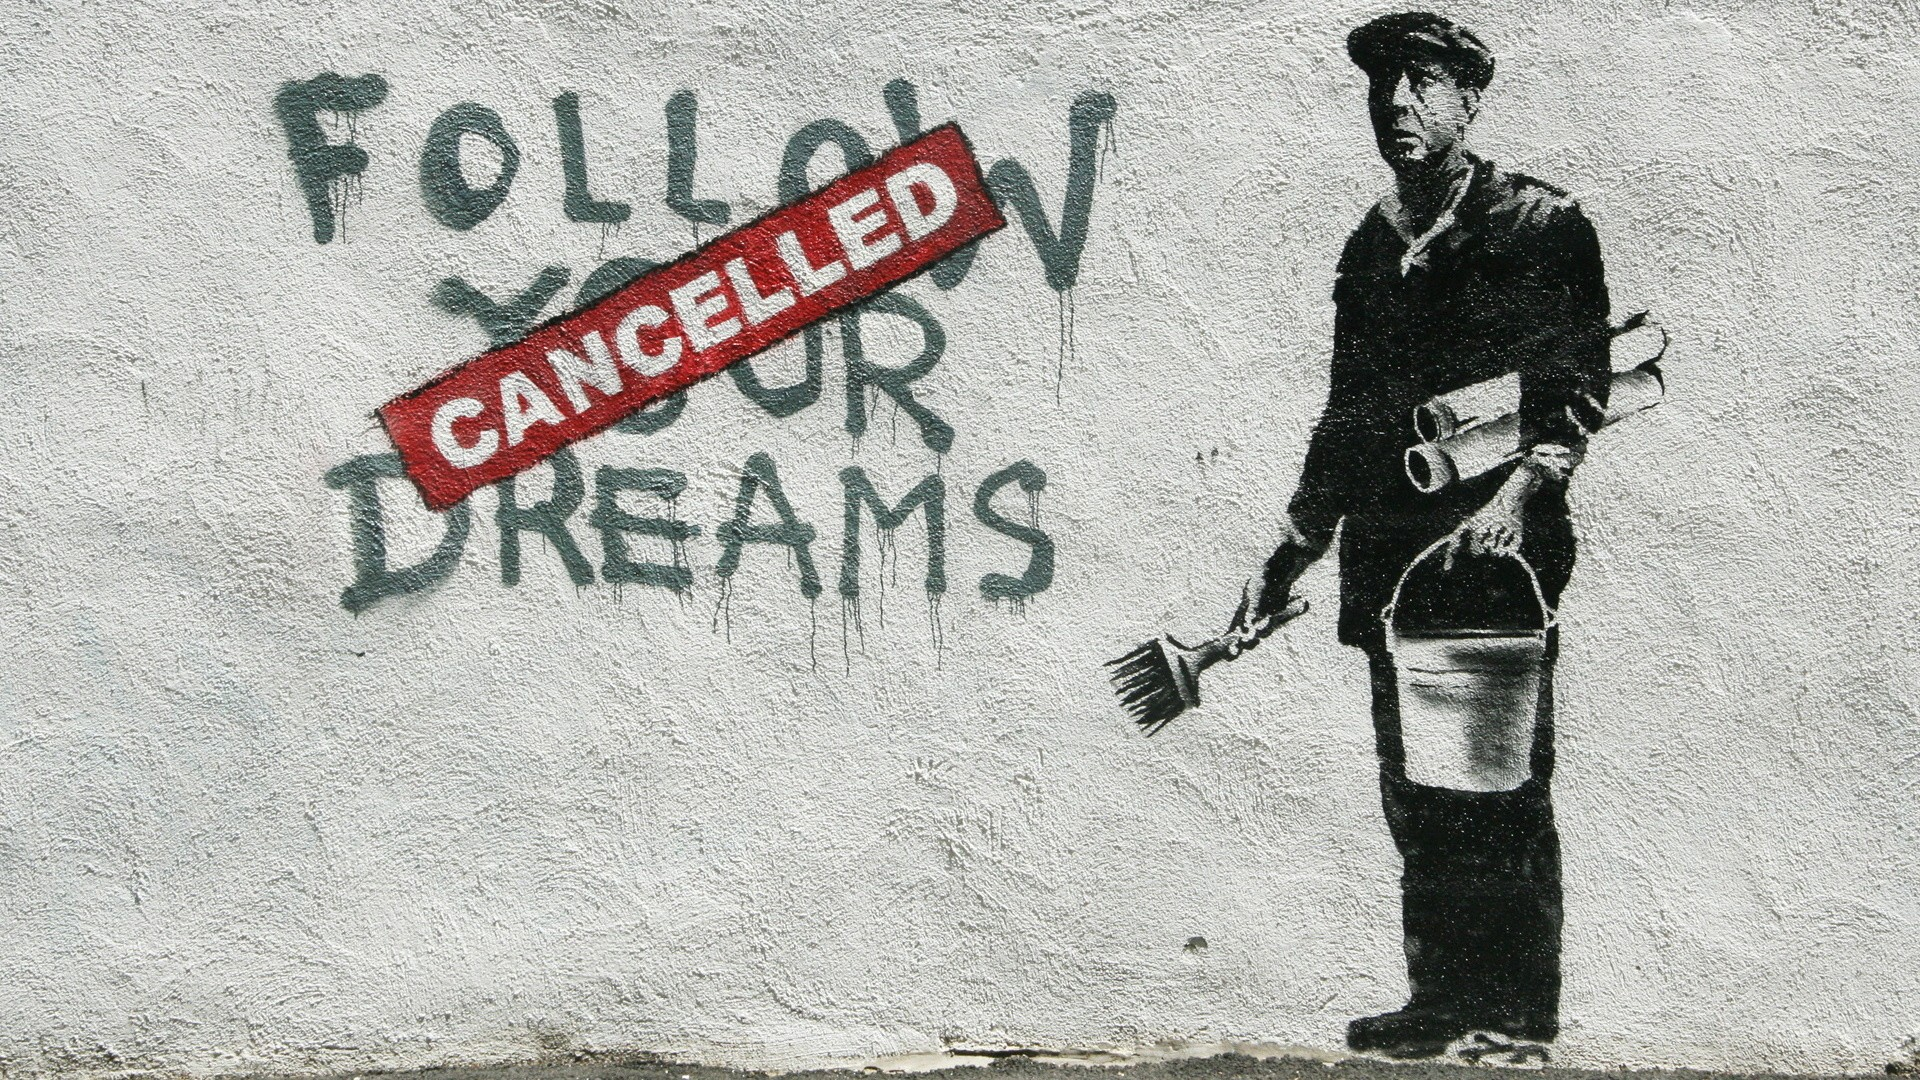 banksy-dreams_00349040.jpg